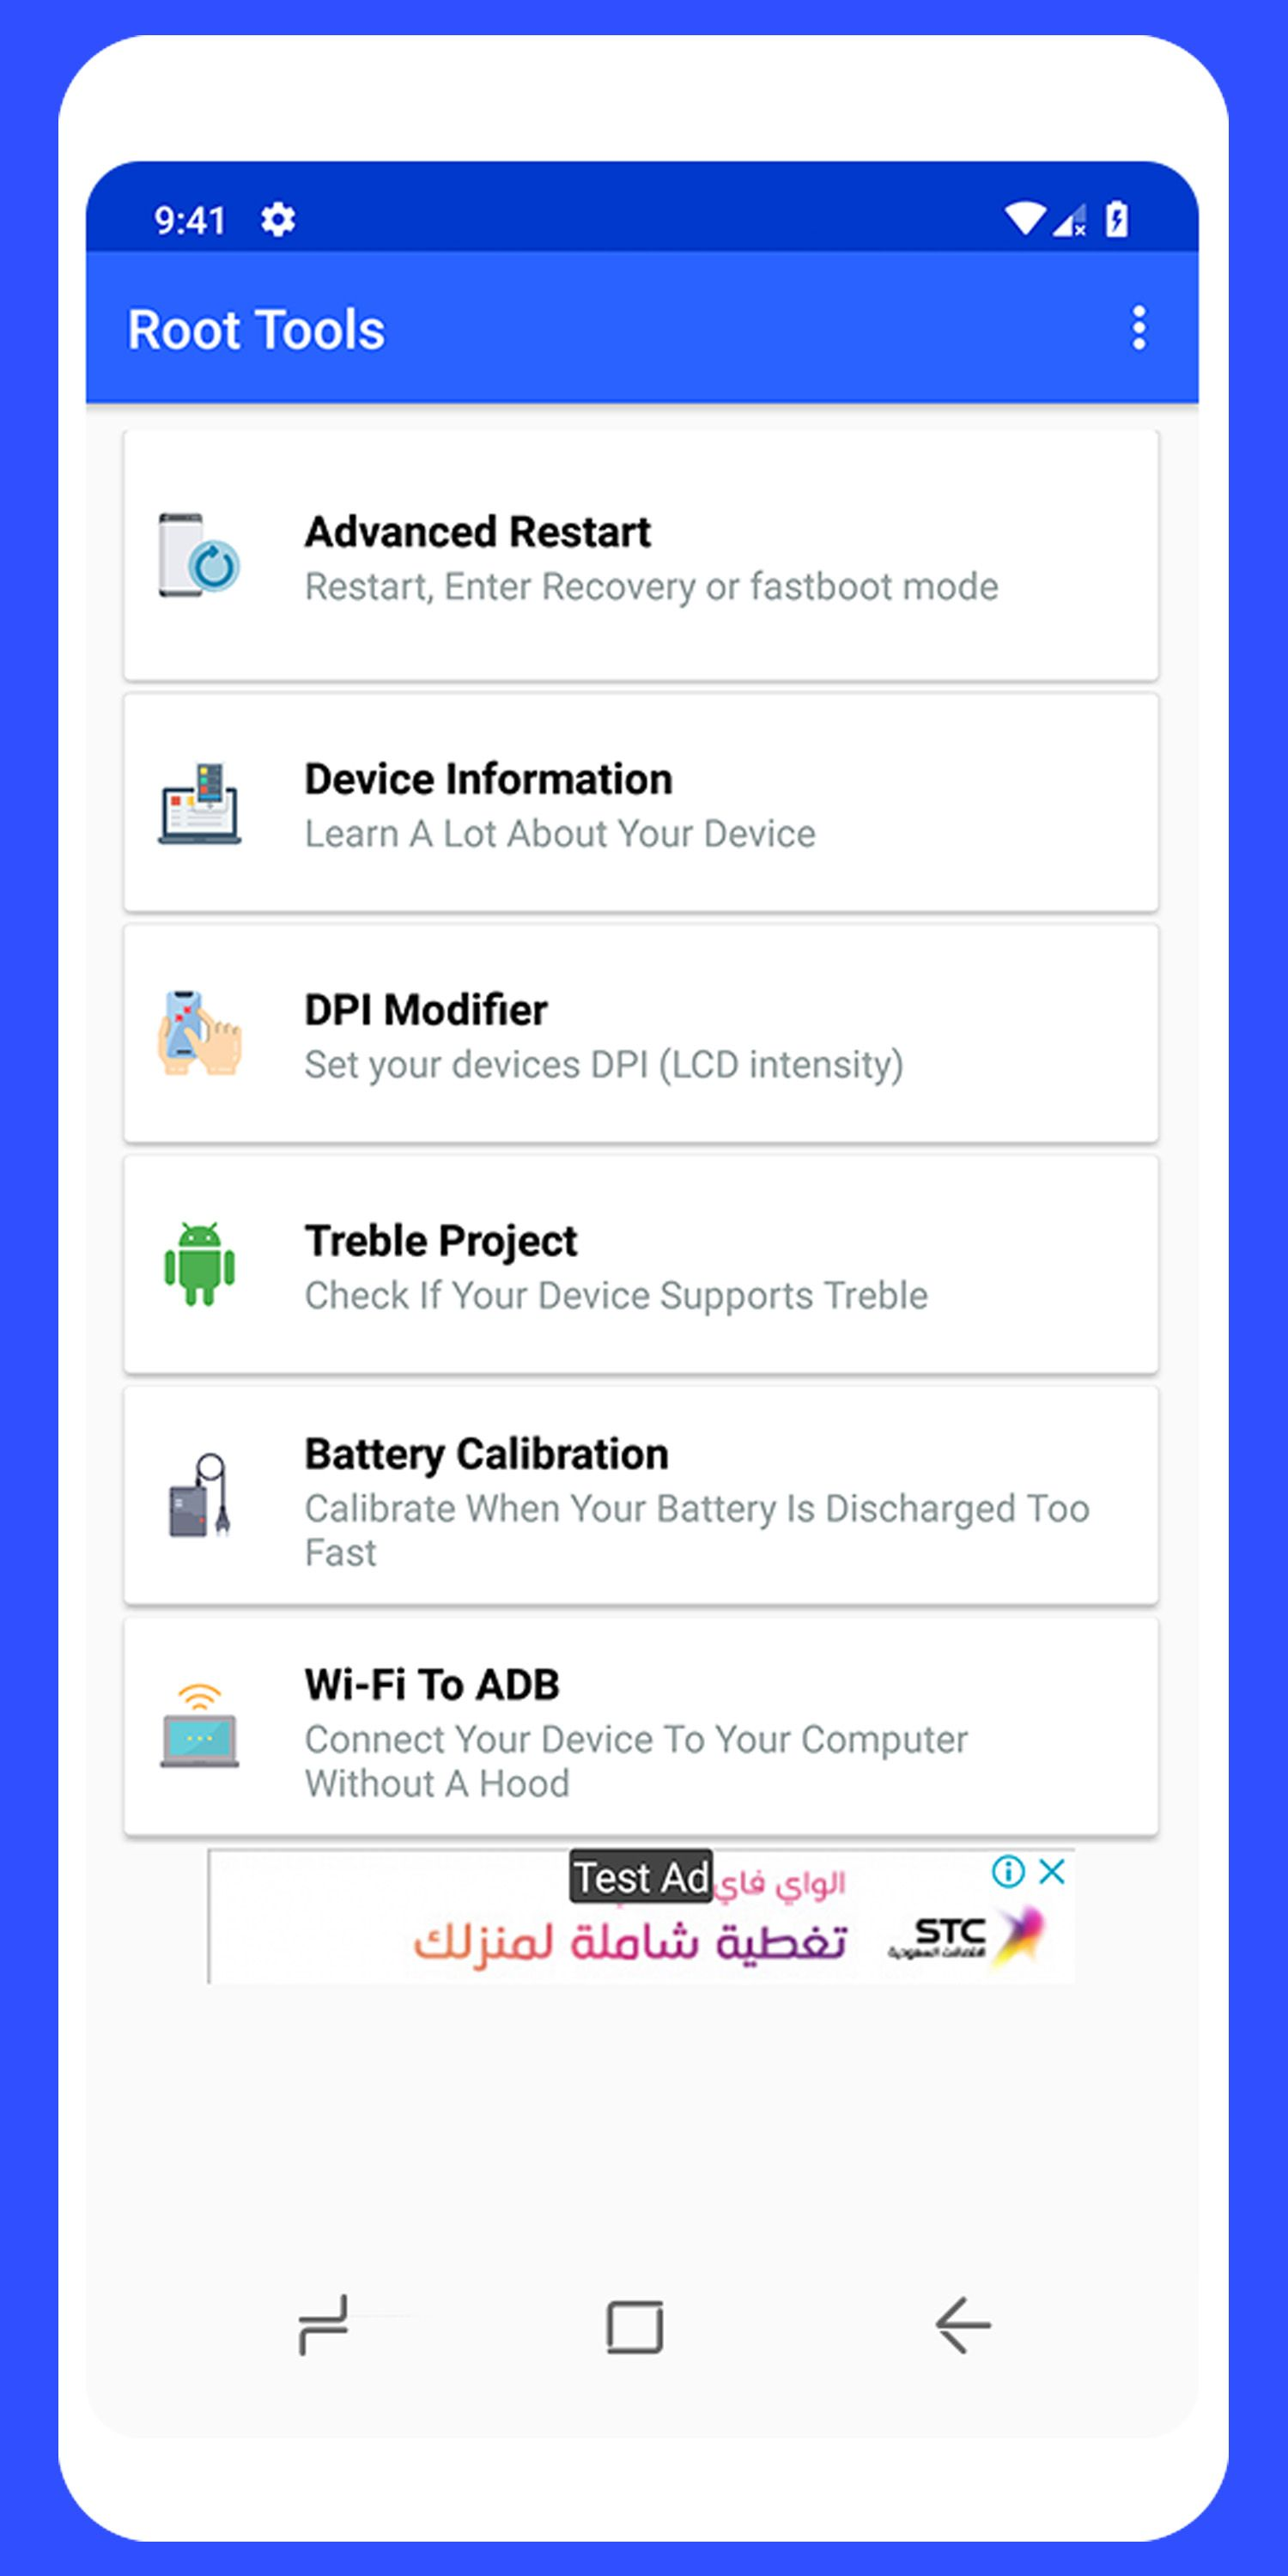 Root Tools Android App Source Code Screenshot 4